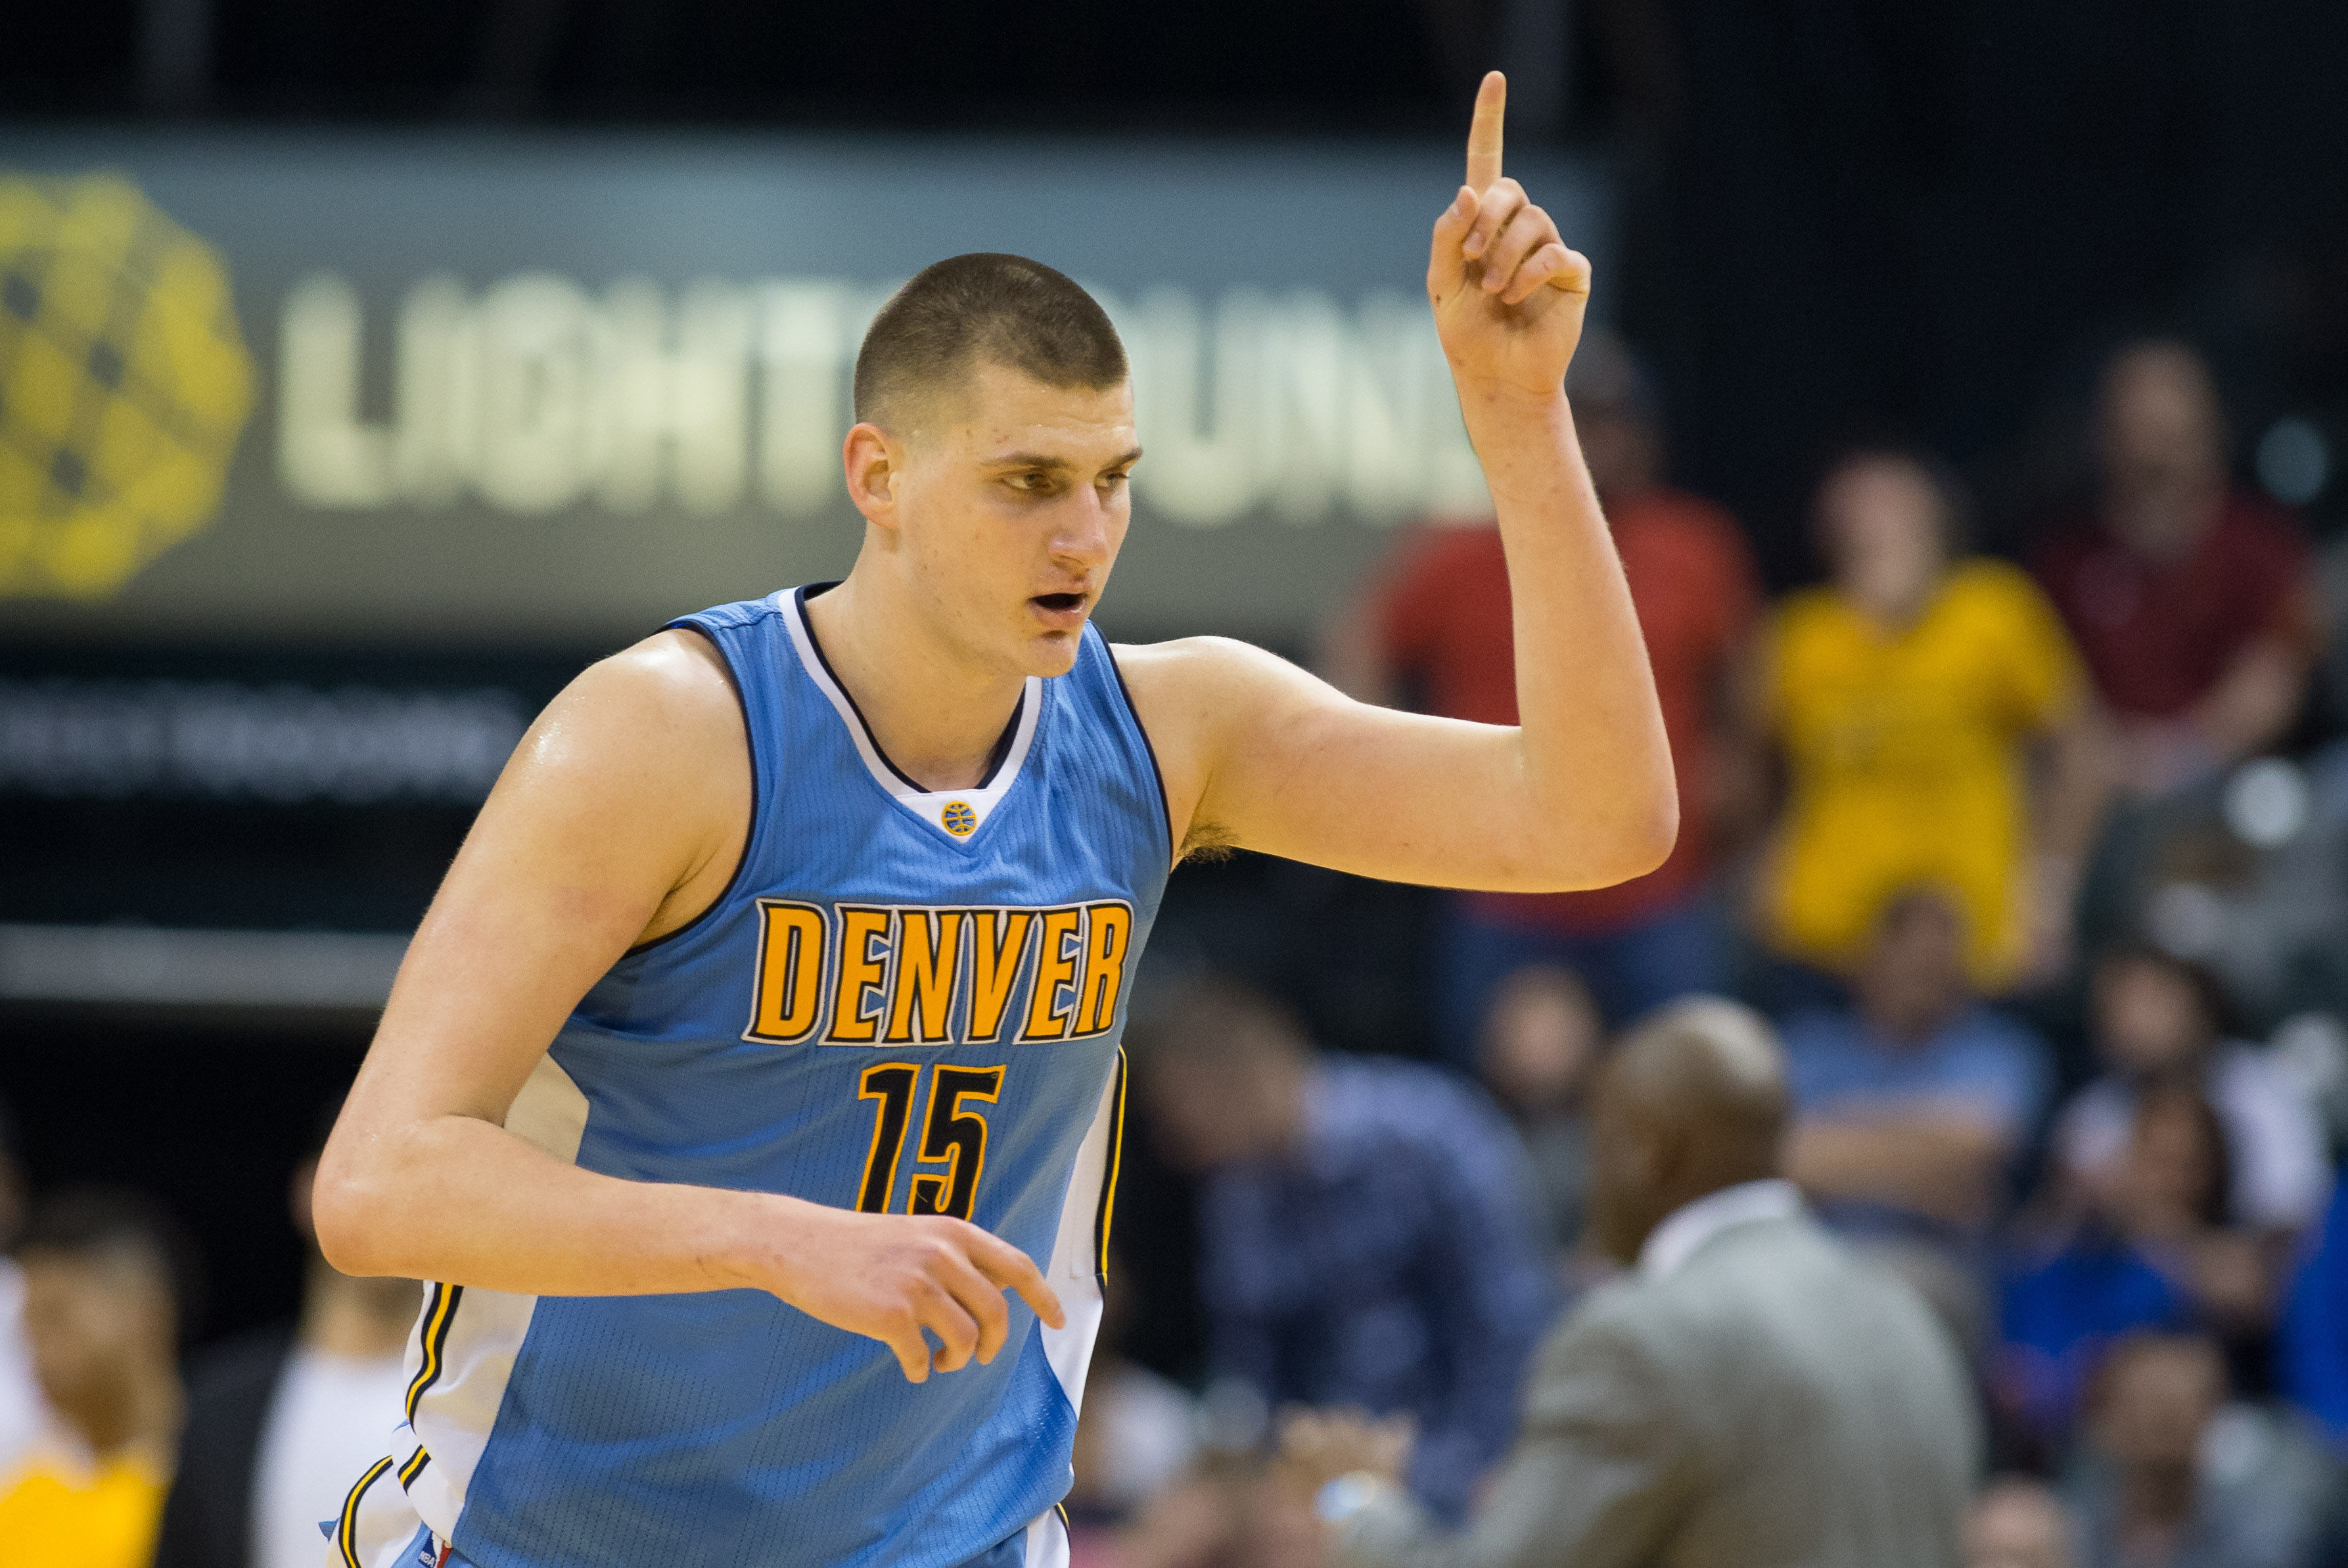 9968761-nba-denver-nuggets-at-indiana-pacers